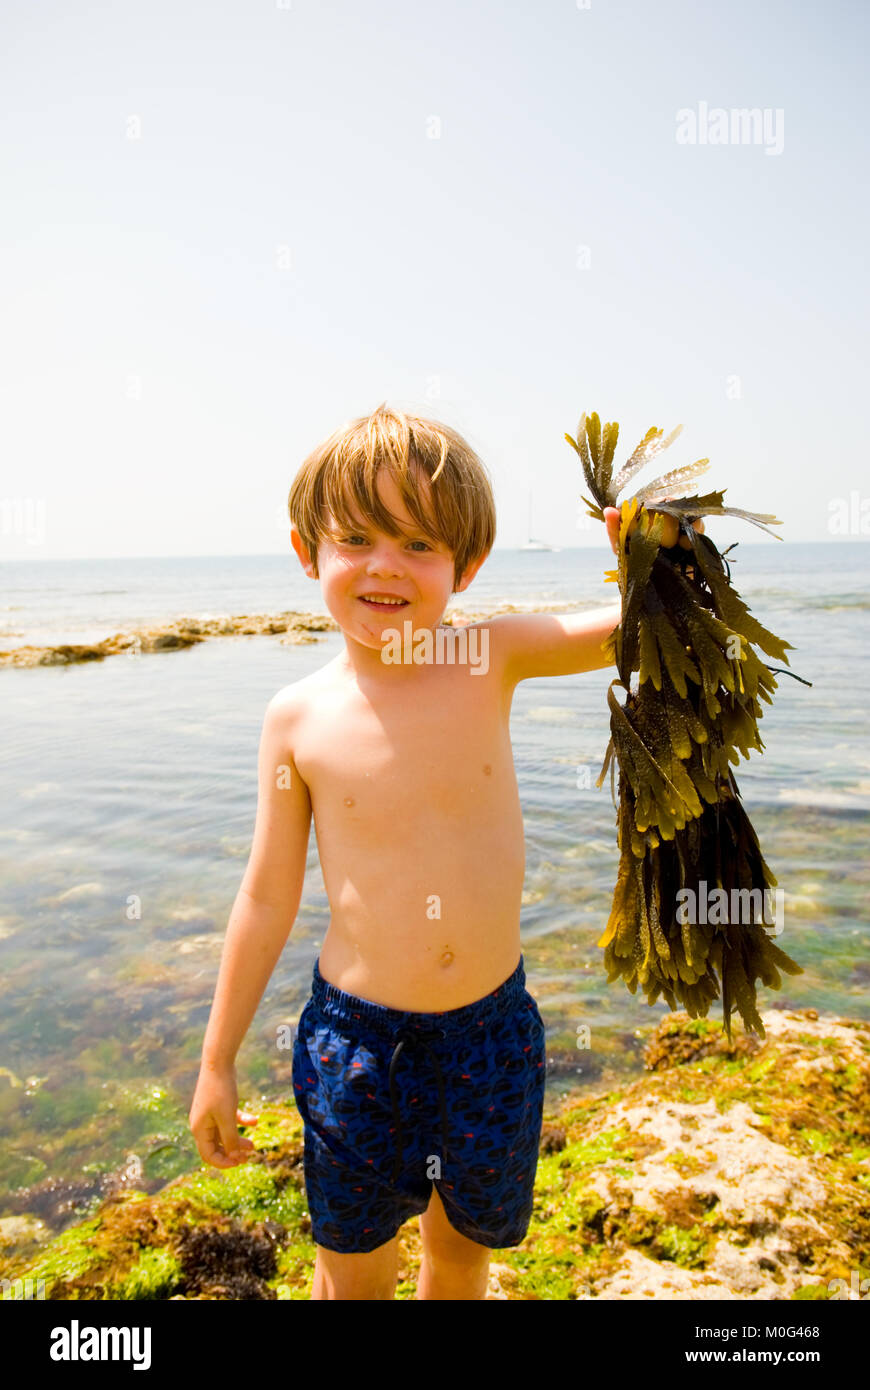 portrait shot of smiling five year old boy standing in swimming trunks with his back to the open sea, holding up, - Stock Image